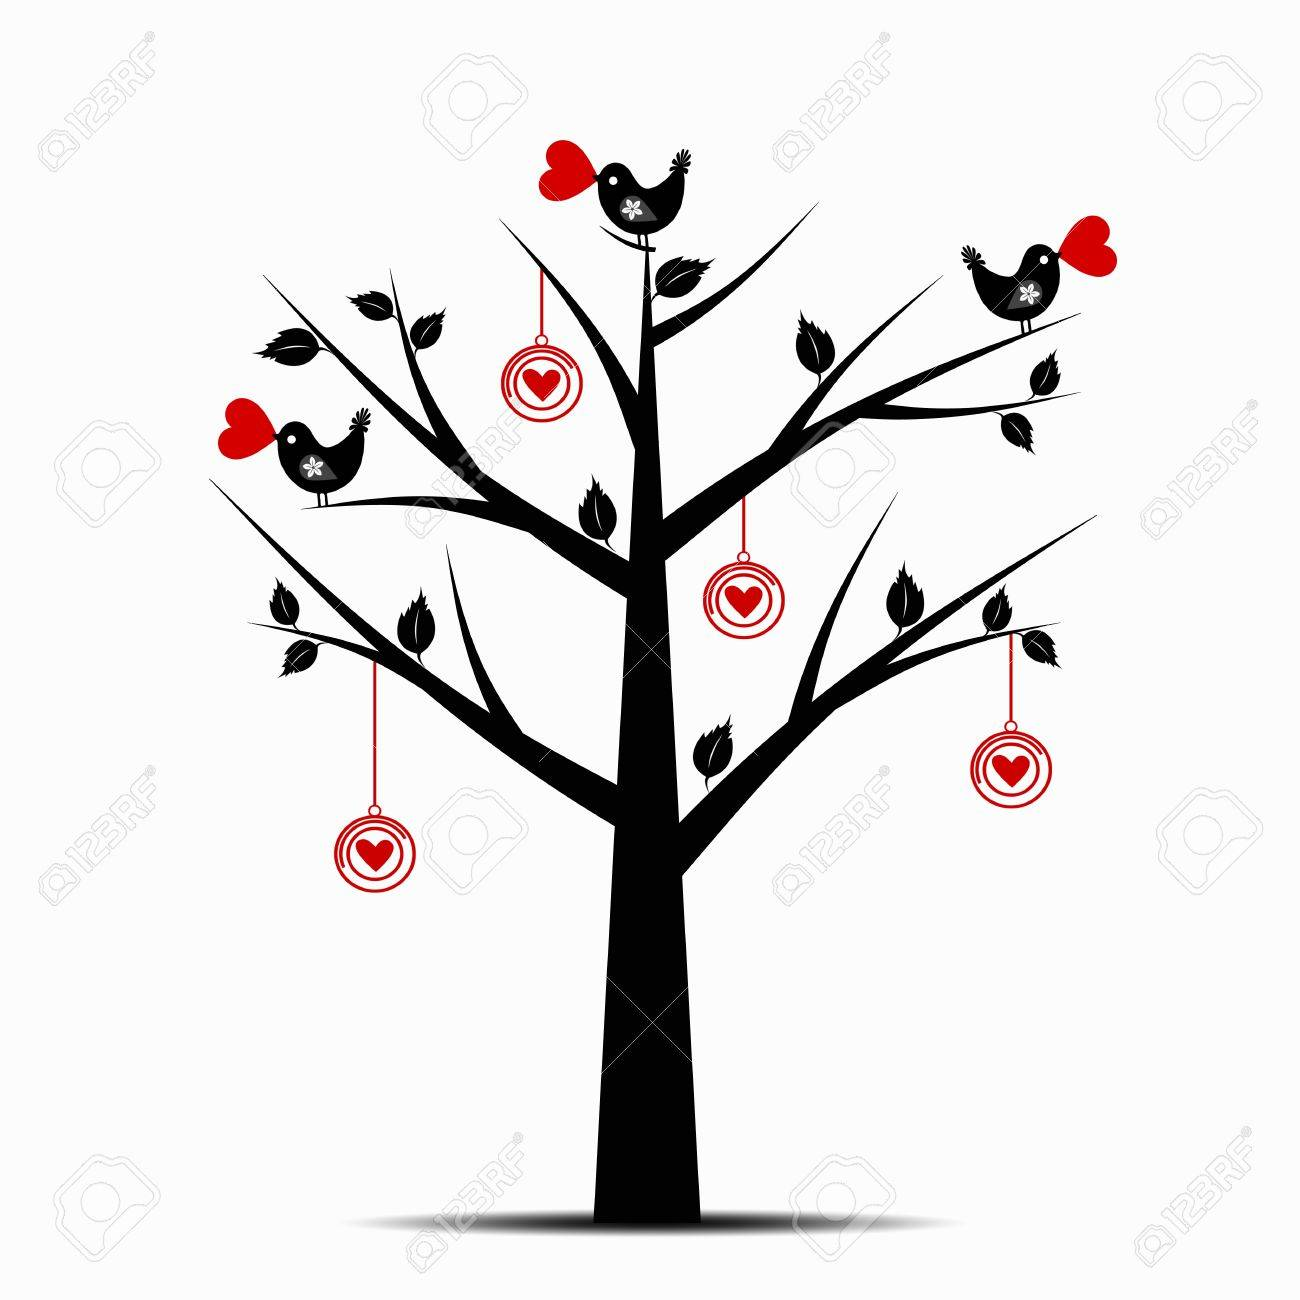 Beautiful Valentines Tree Isolated on White Background Stock Vector - 11960814